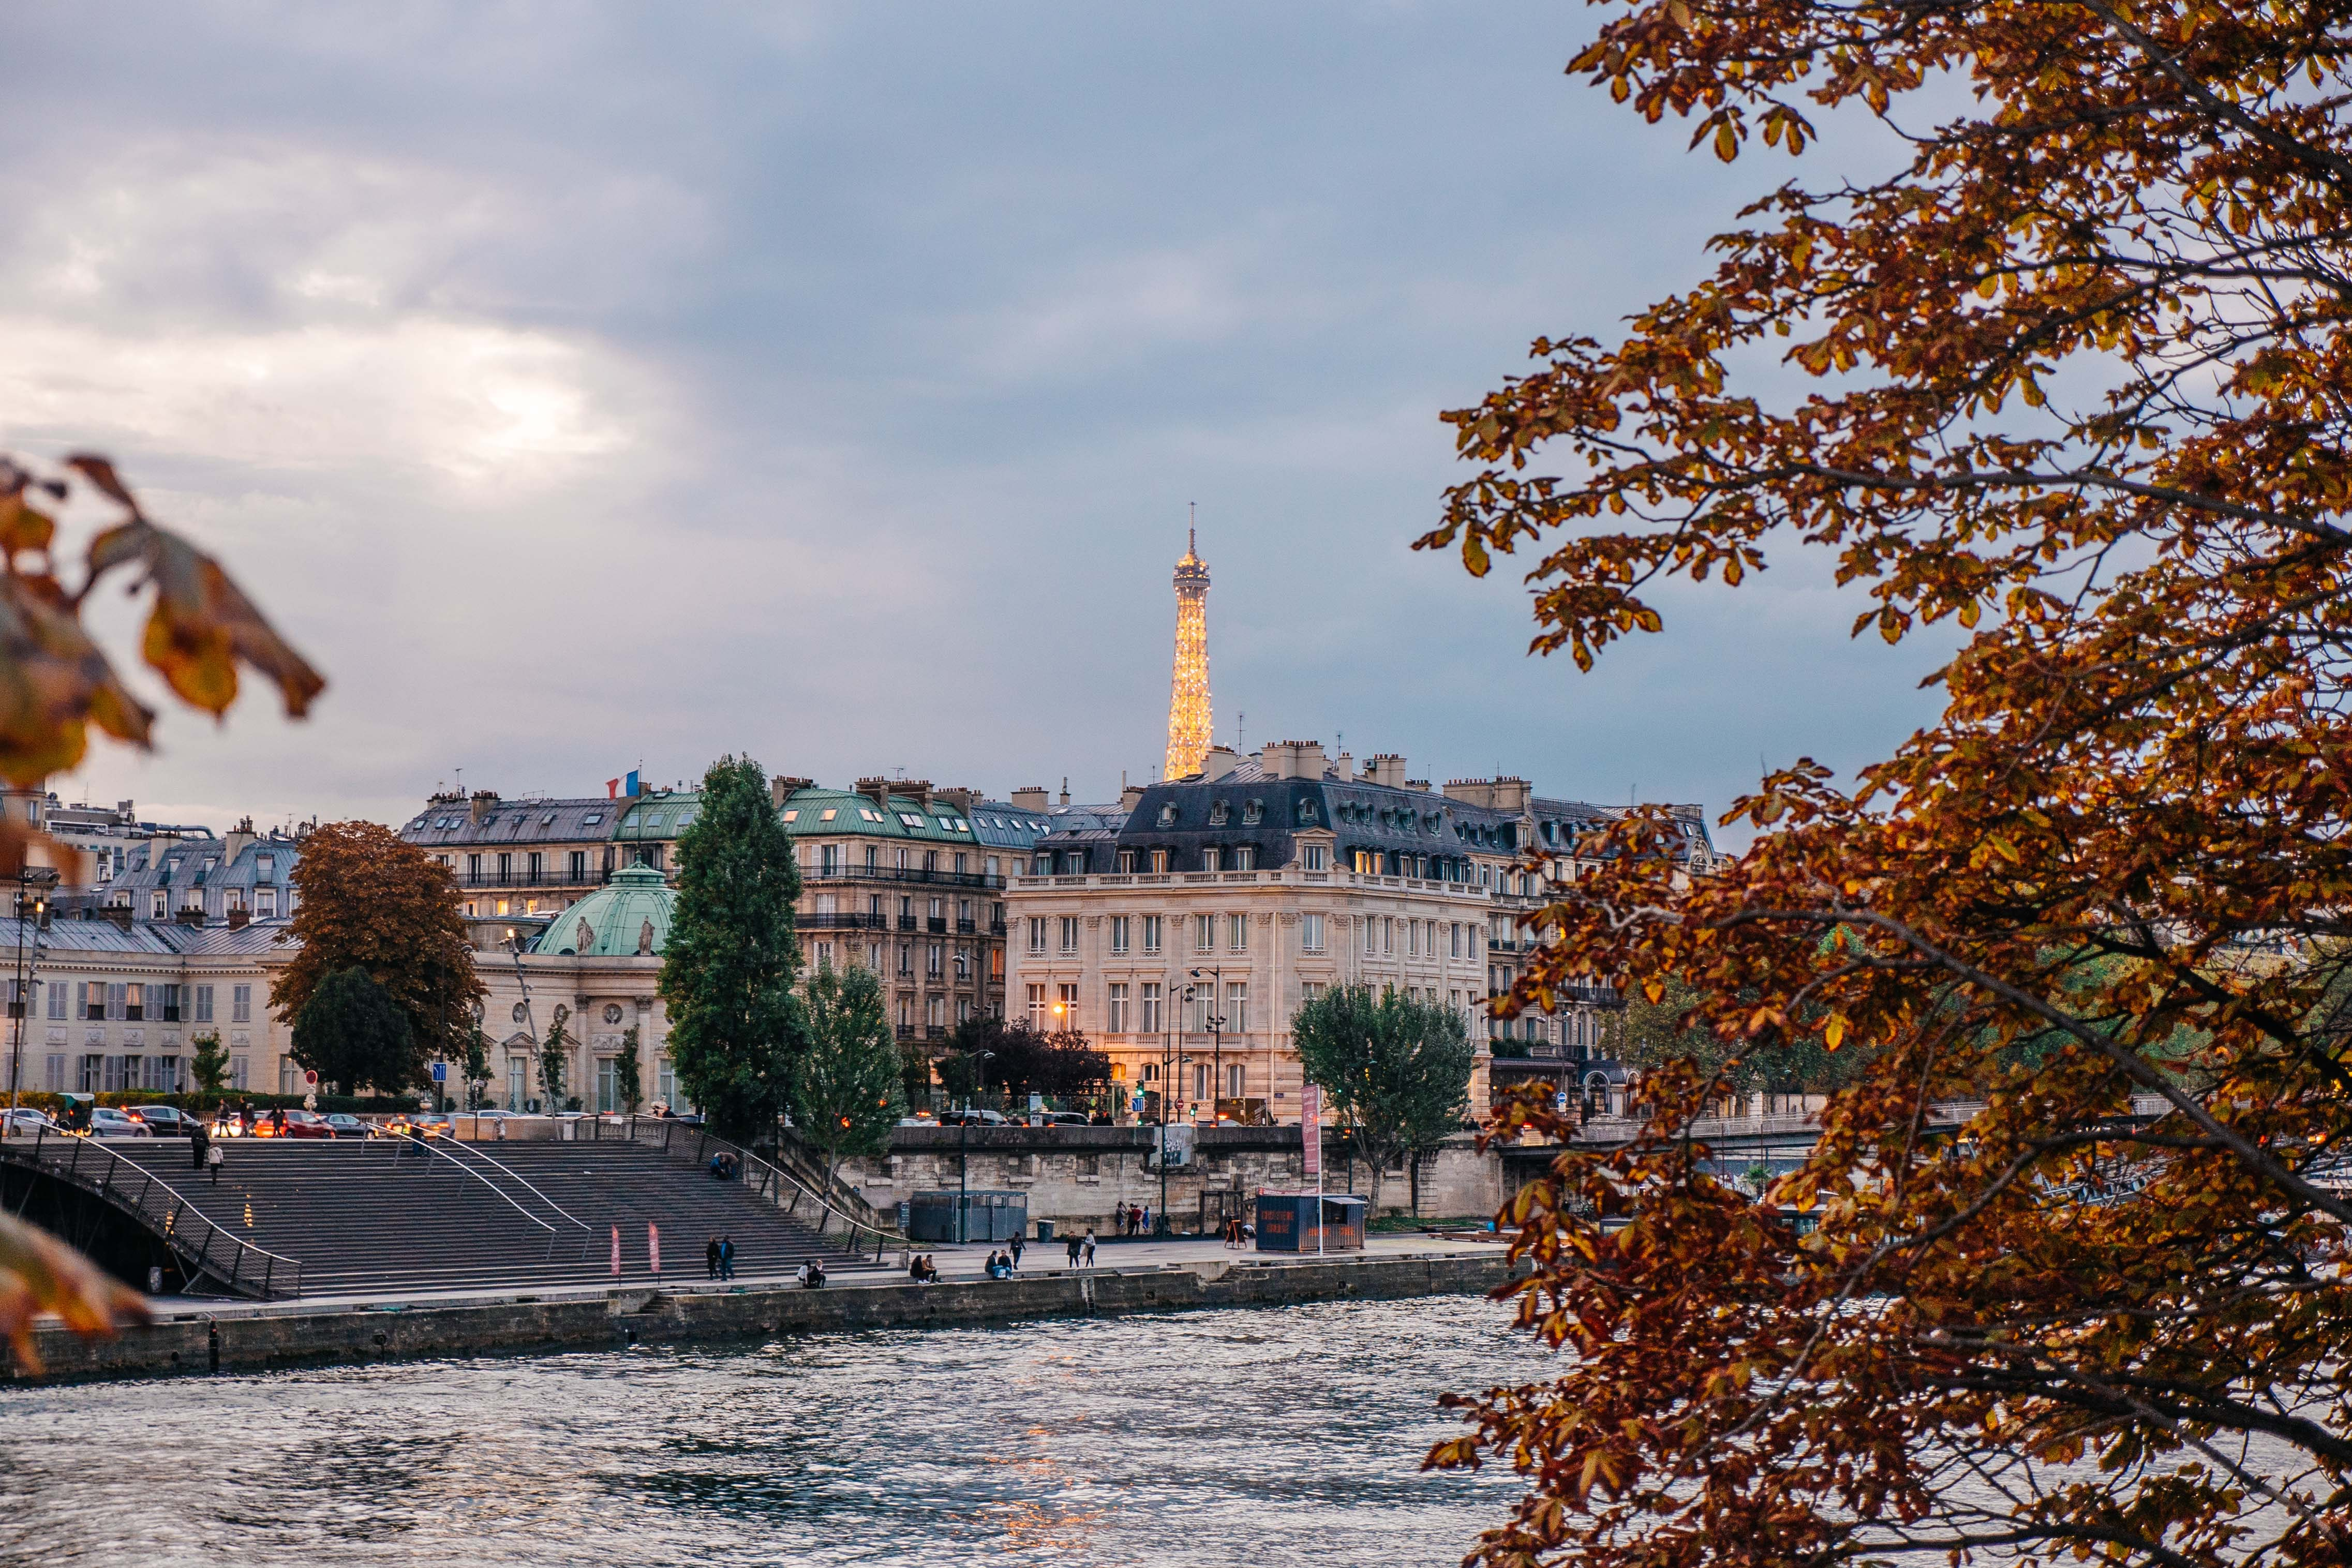 The Seine River in Paris during Autumn with buildings and the Eiffel Tower in the distance